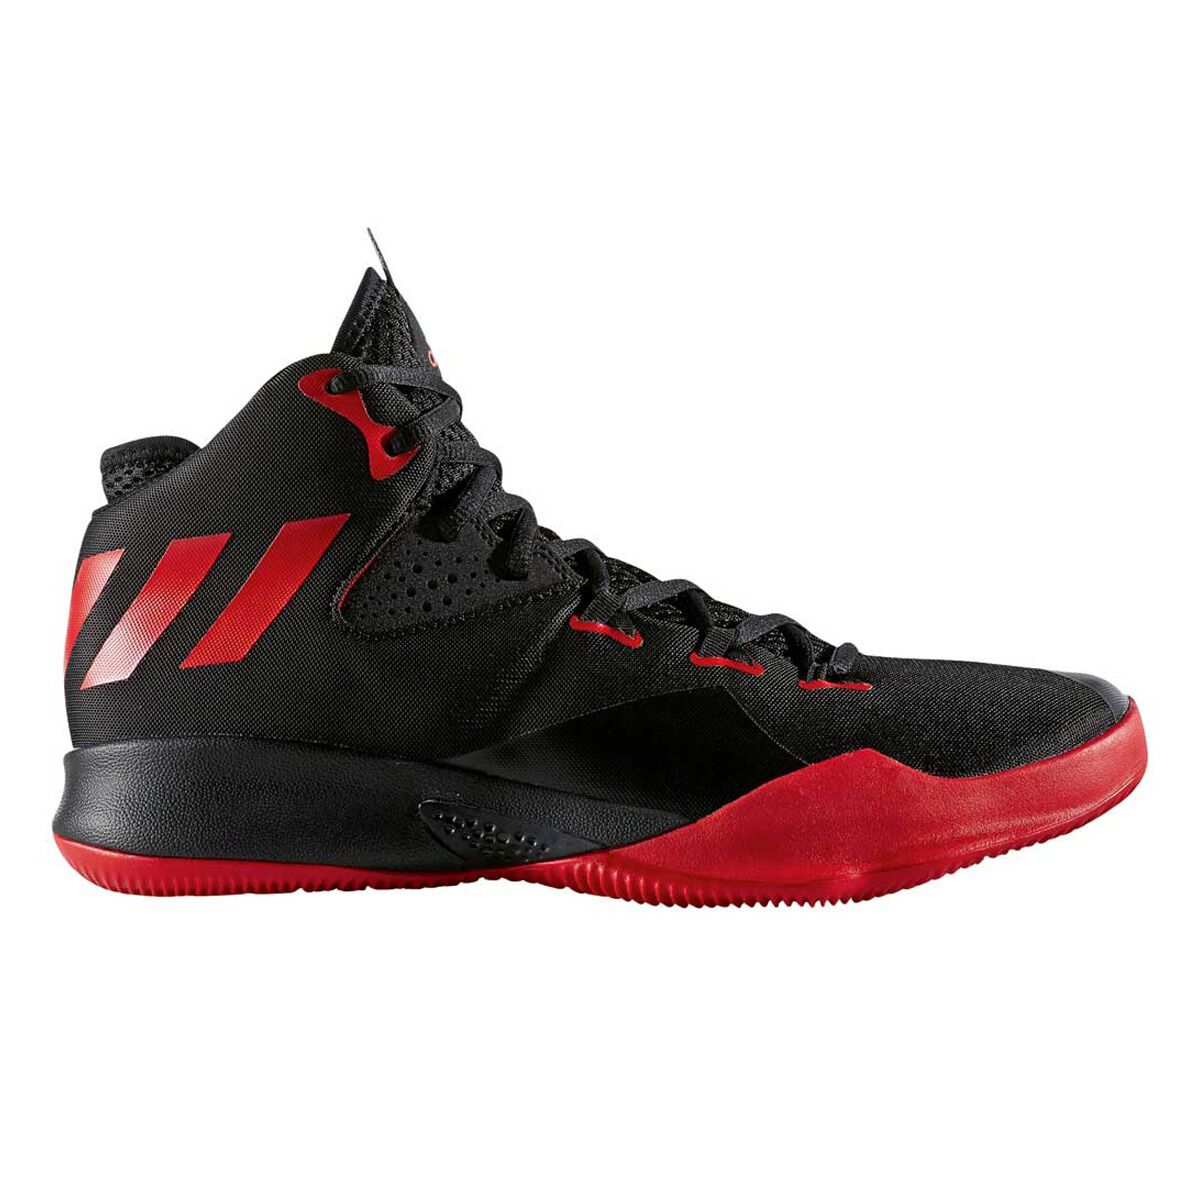 quality design 8e135 727b7 new arrivals adidas basketball shoes red and black d275f fbf71